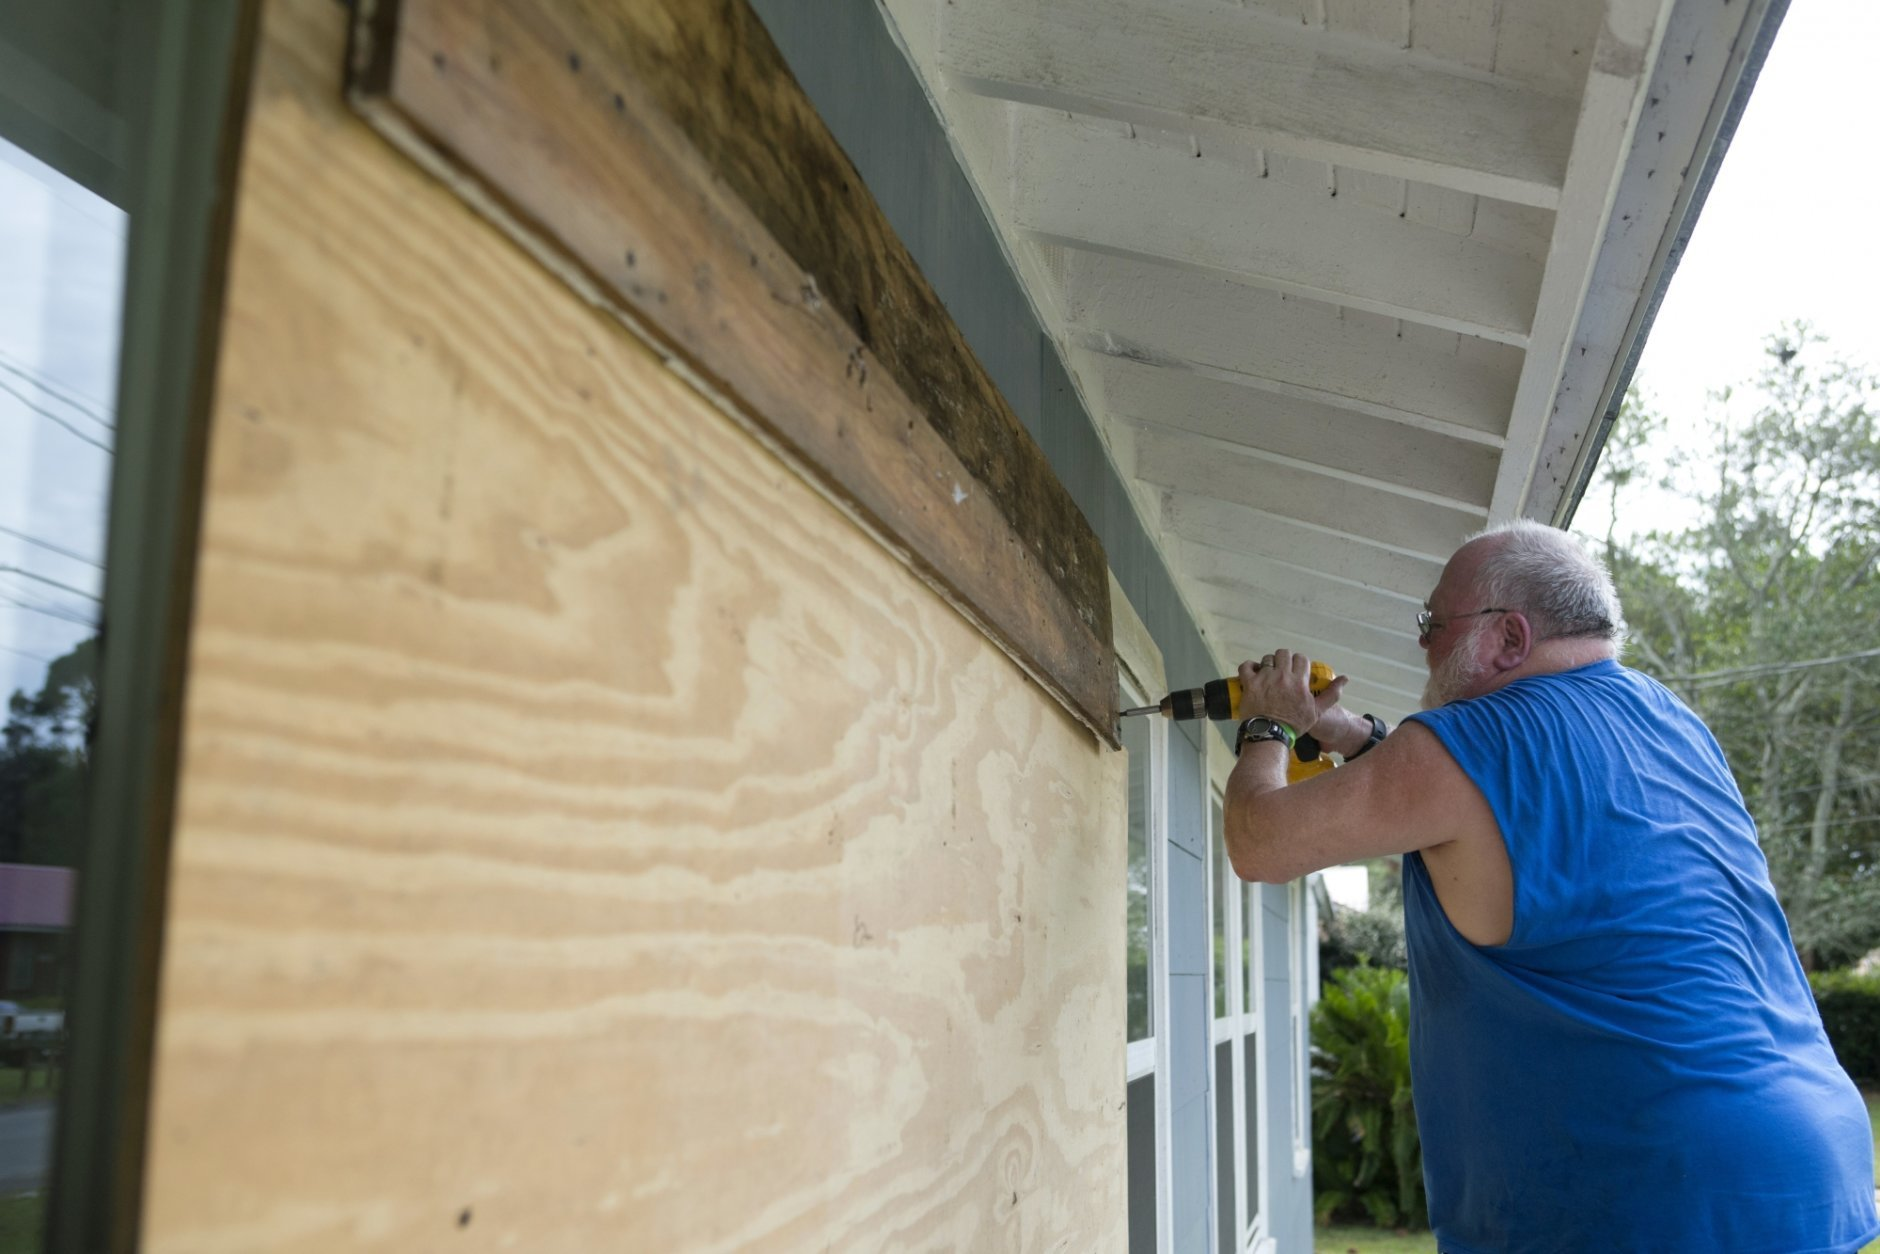 David Hayes boards up a window at this home in Panama City, Fla., as Hurricane Michael approaches on Tuesday, Oct. 9, 2018. (Joshua Boucher/News Herald via AP)